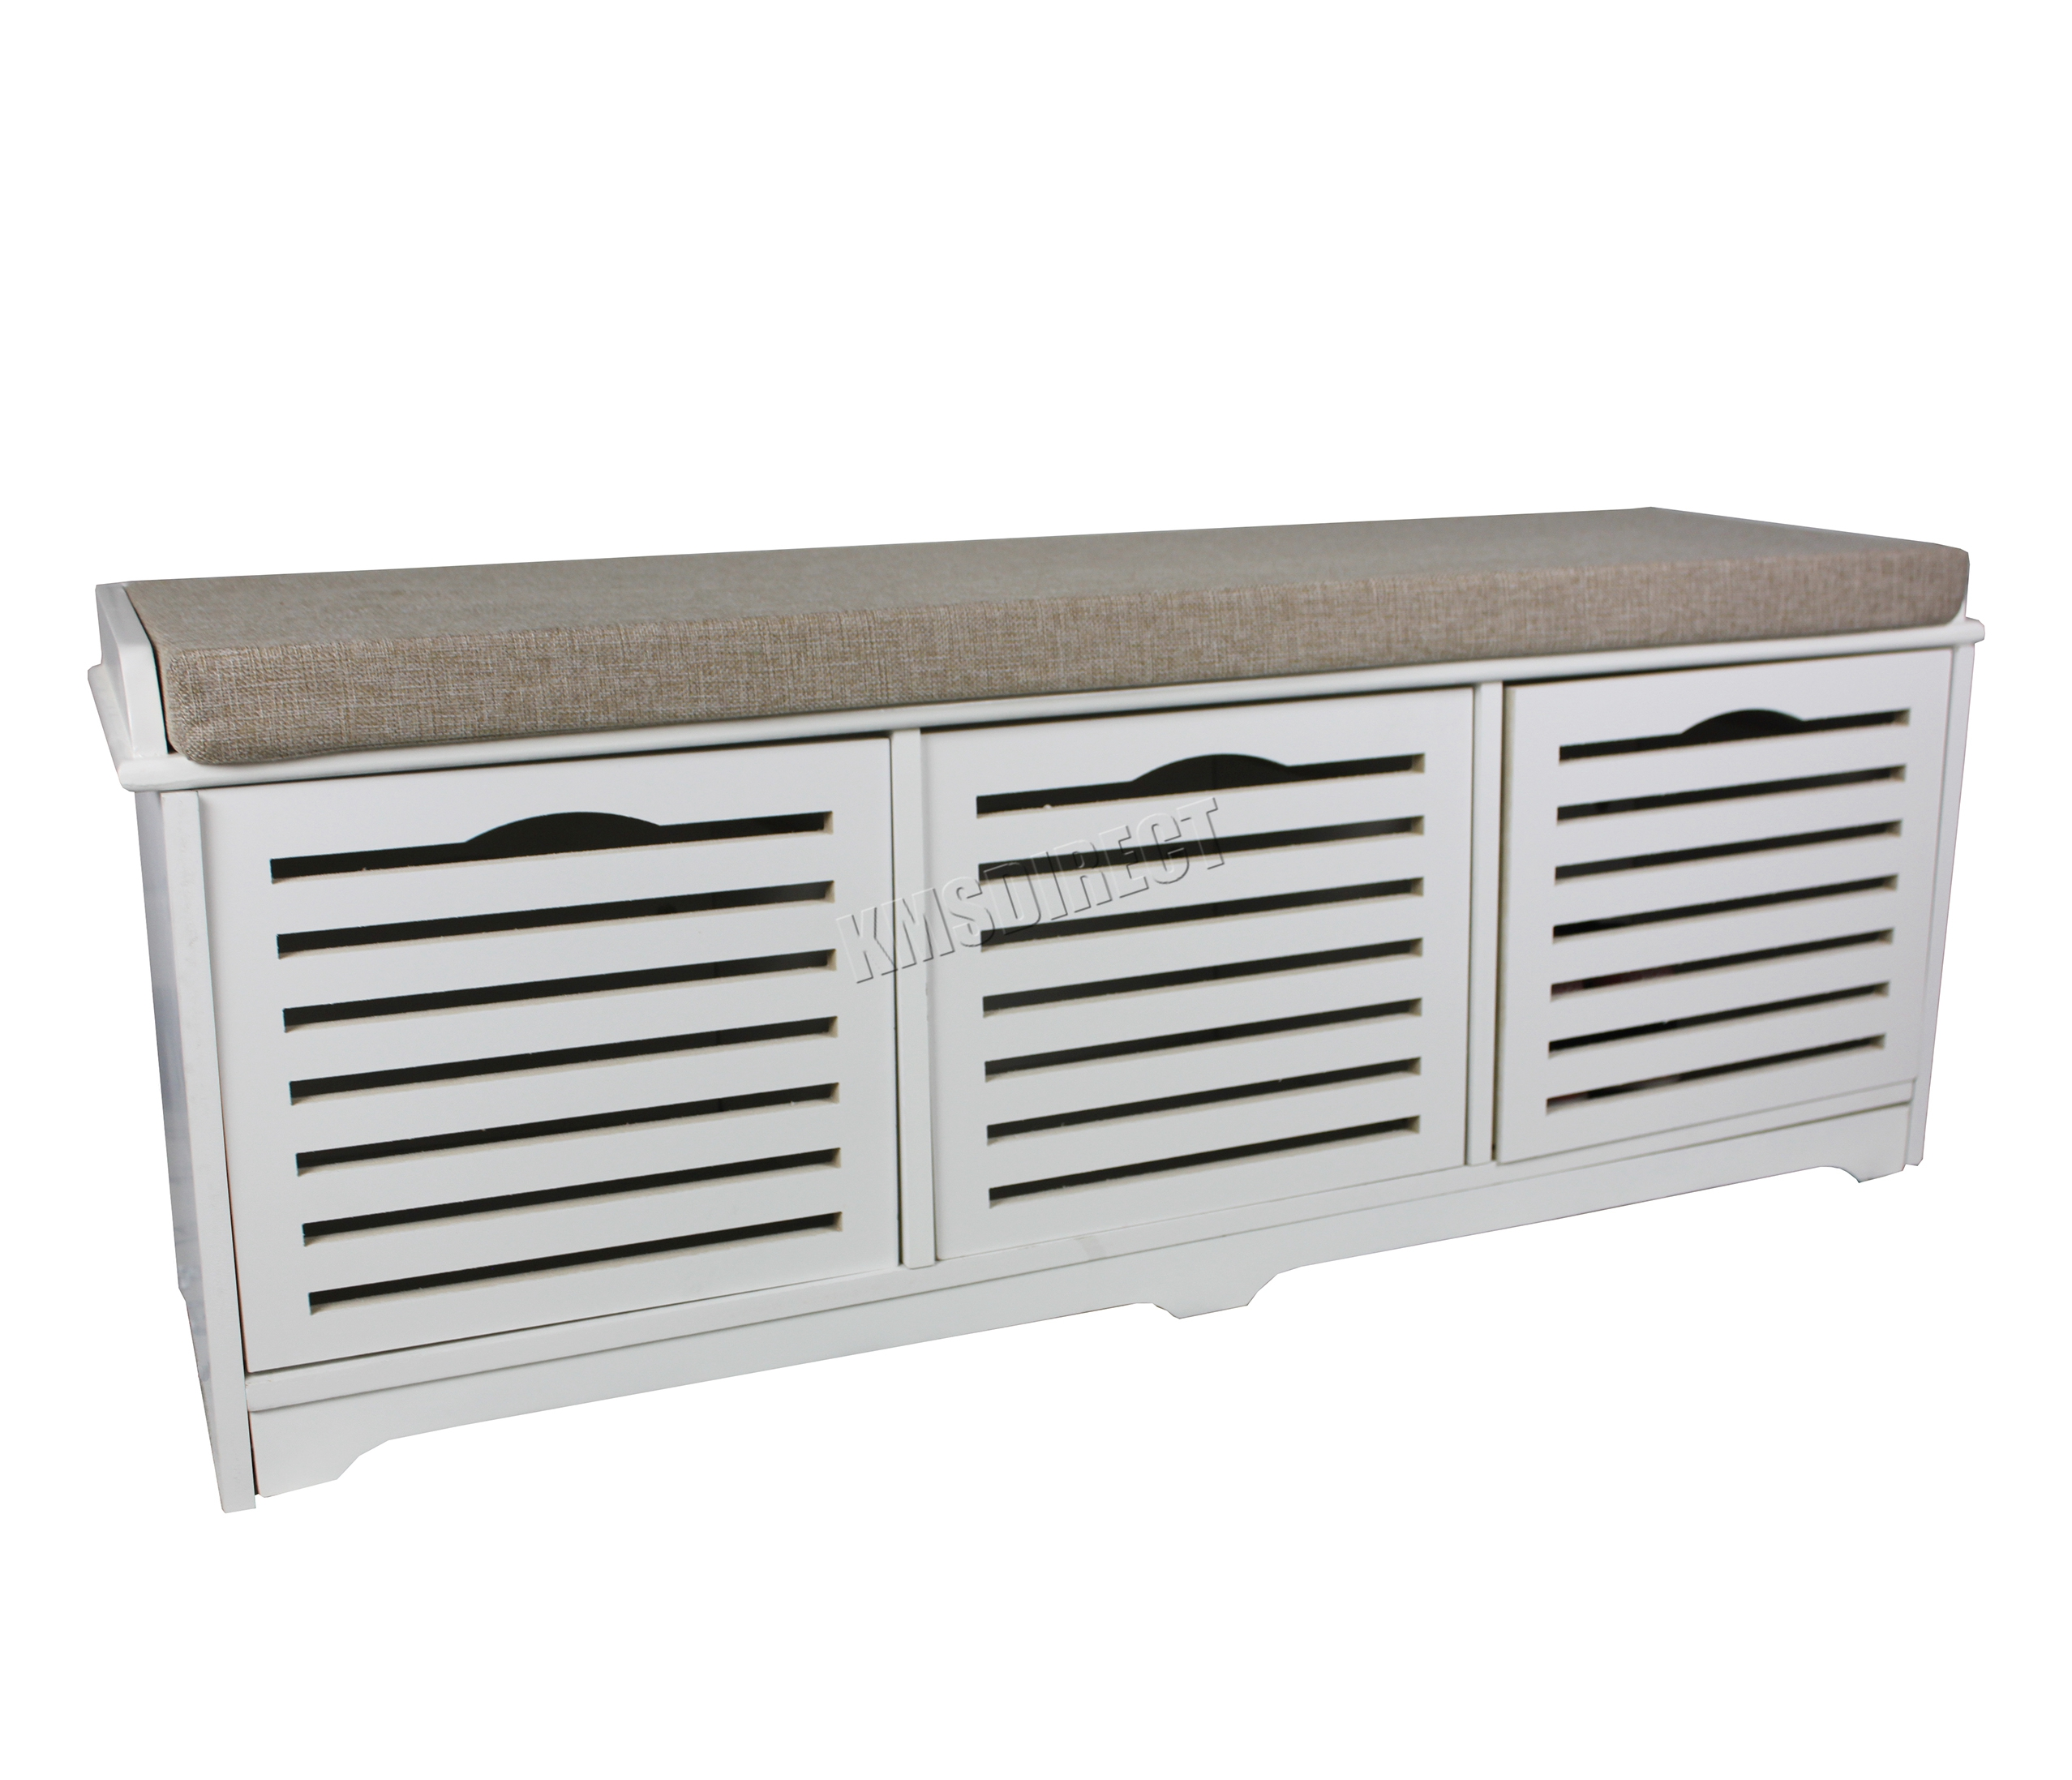 Foxhunter Shoe Storage Bench 3 Drawers Padded Seat Stool